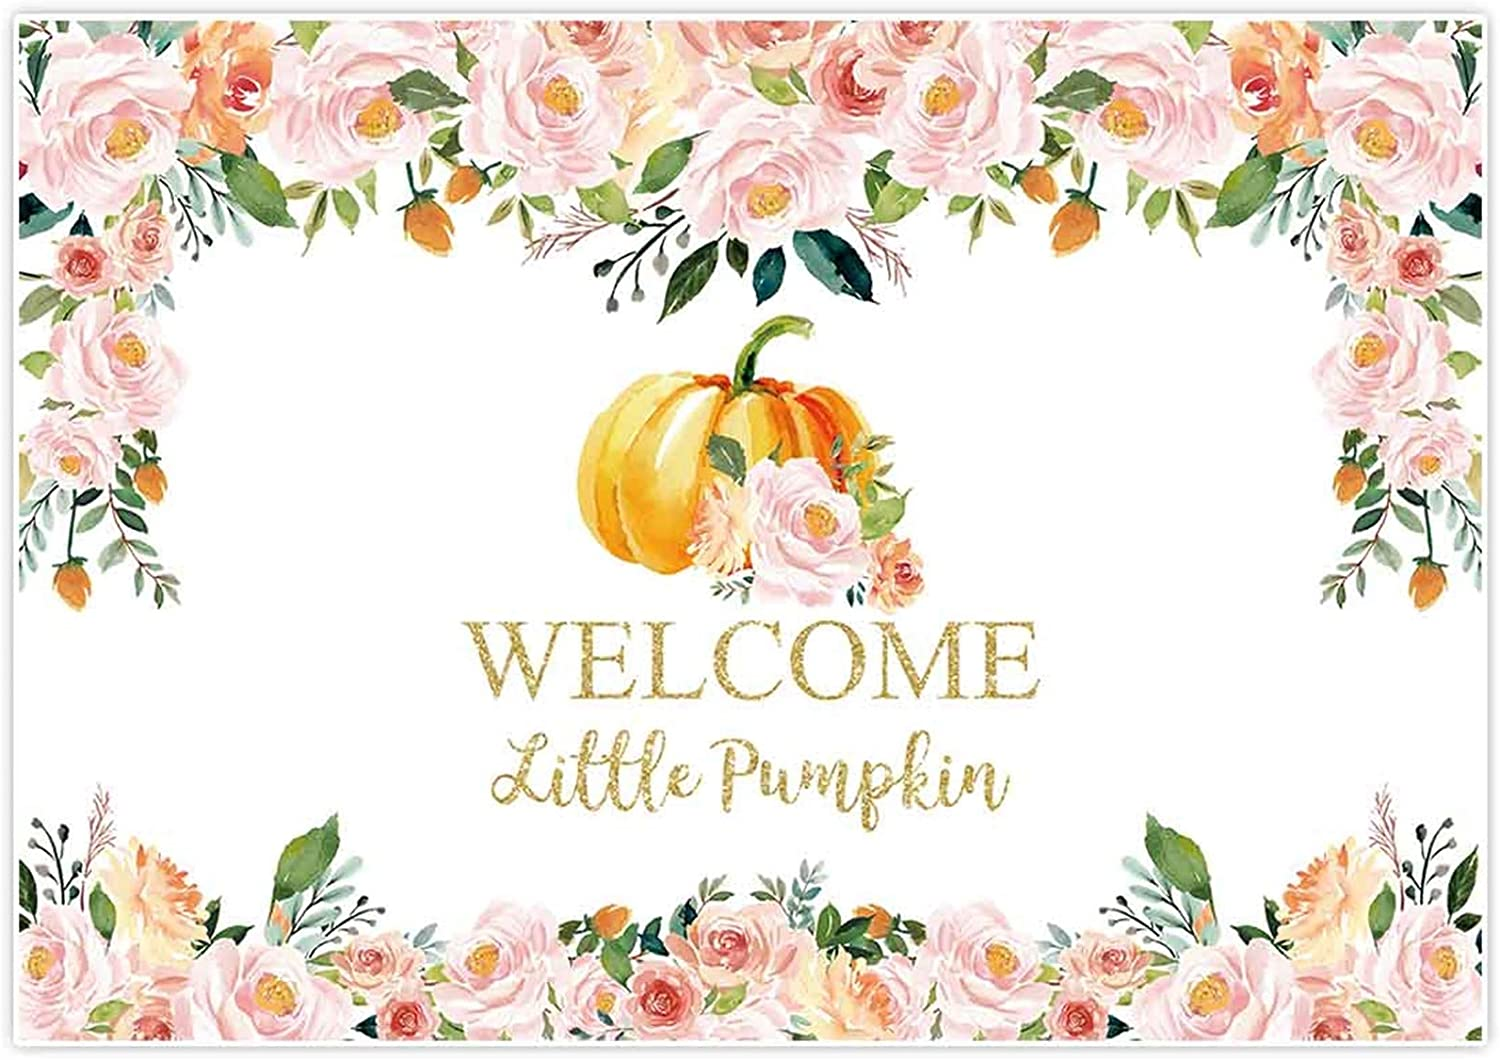 New 7x5ft Halloween Baby Shower Backdrop Girl 1st Birthday Onederland Fall Autumn Photography Background Party Decorations Banner Decor Welcome Little Pumpkin Pink Floral Studio Photo Booth